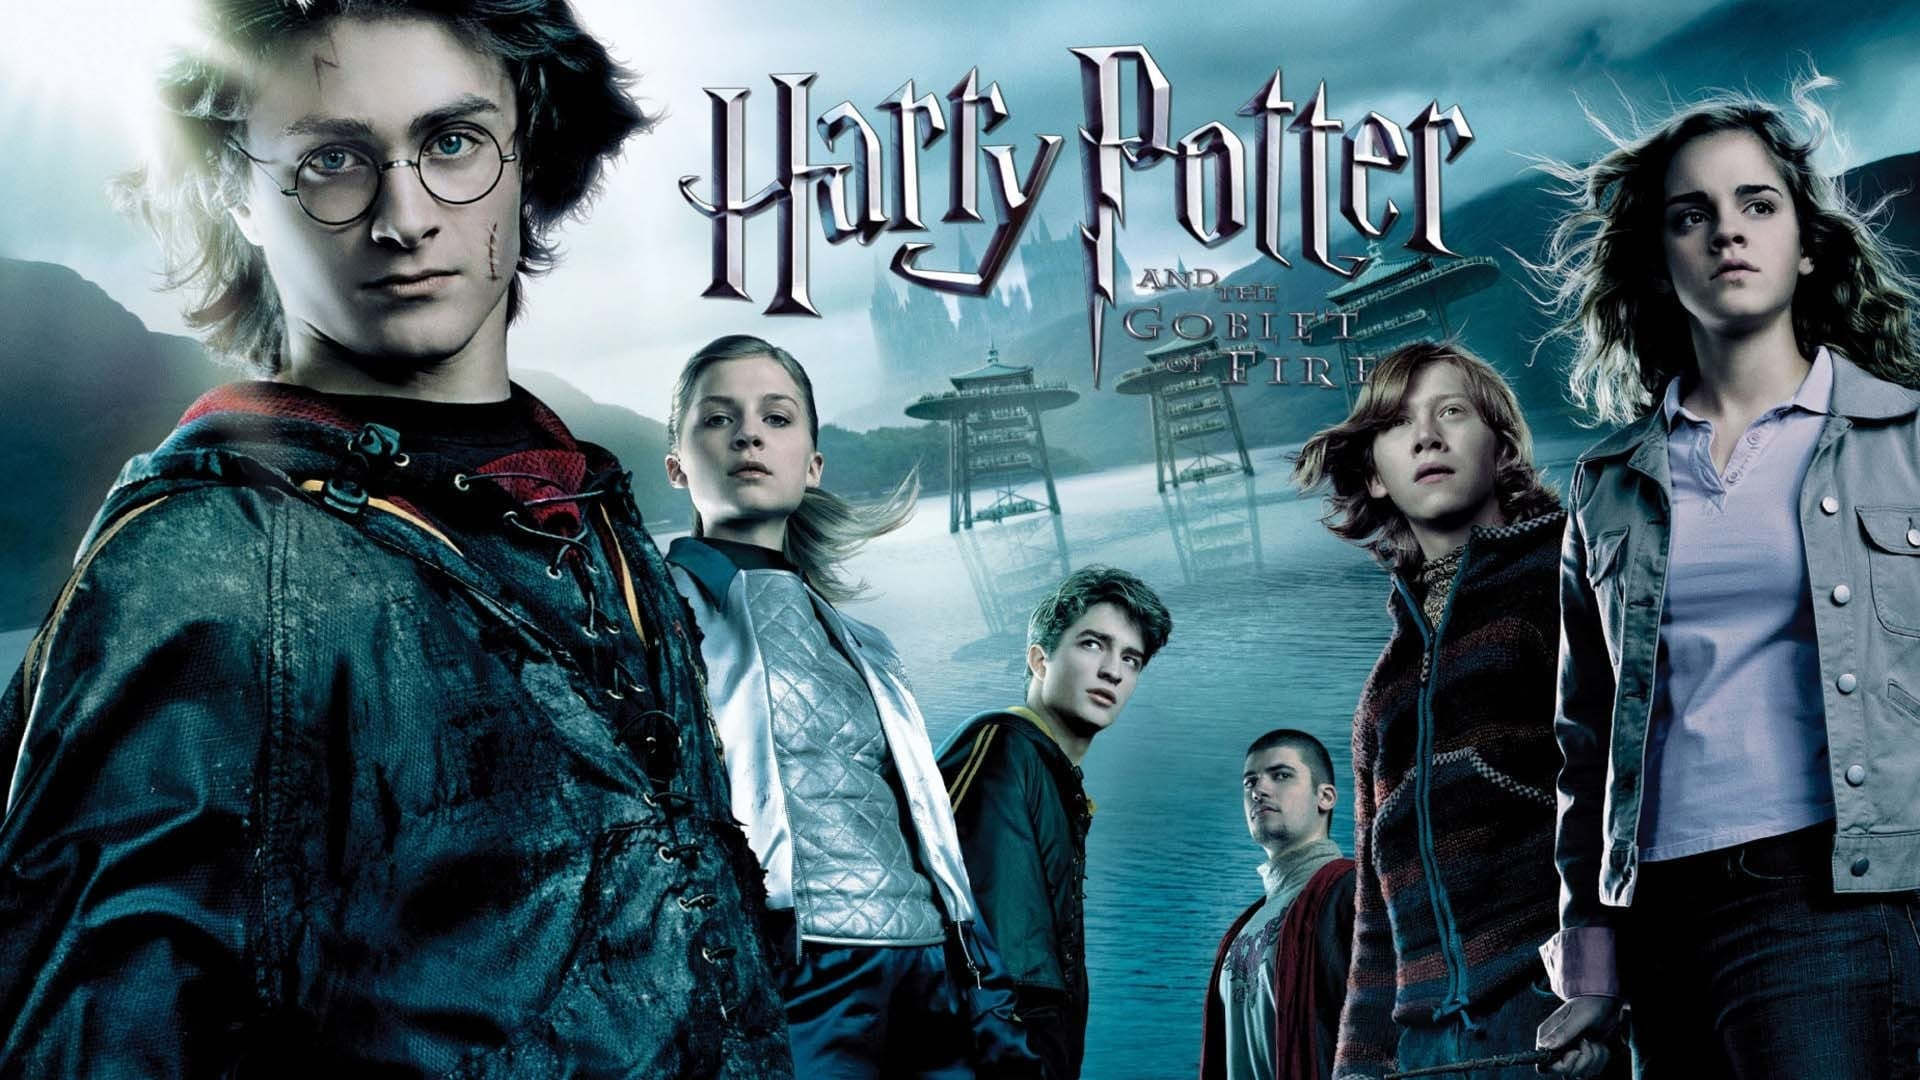 Regarder harry potter et la coupe de feu film en streaming - Harry potter la coupe de feu streaming ...